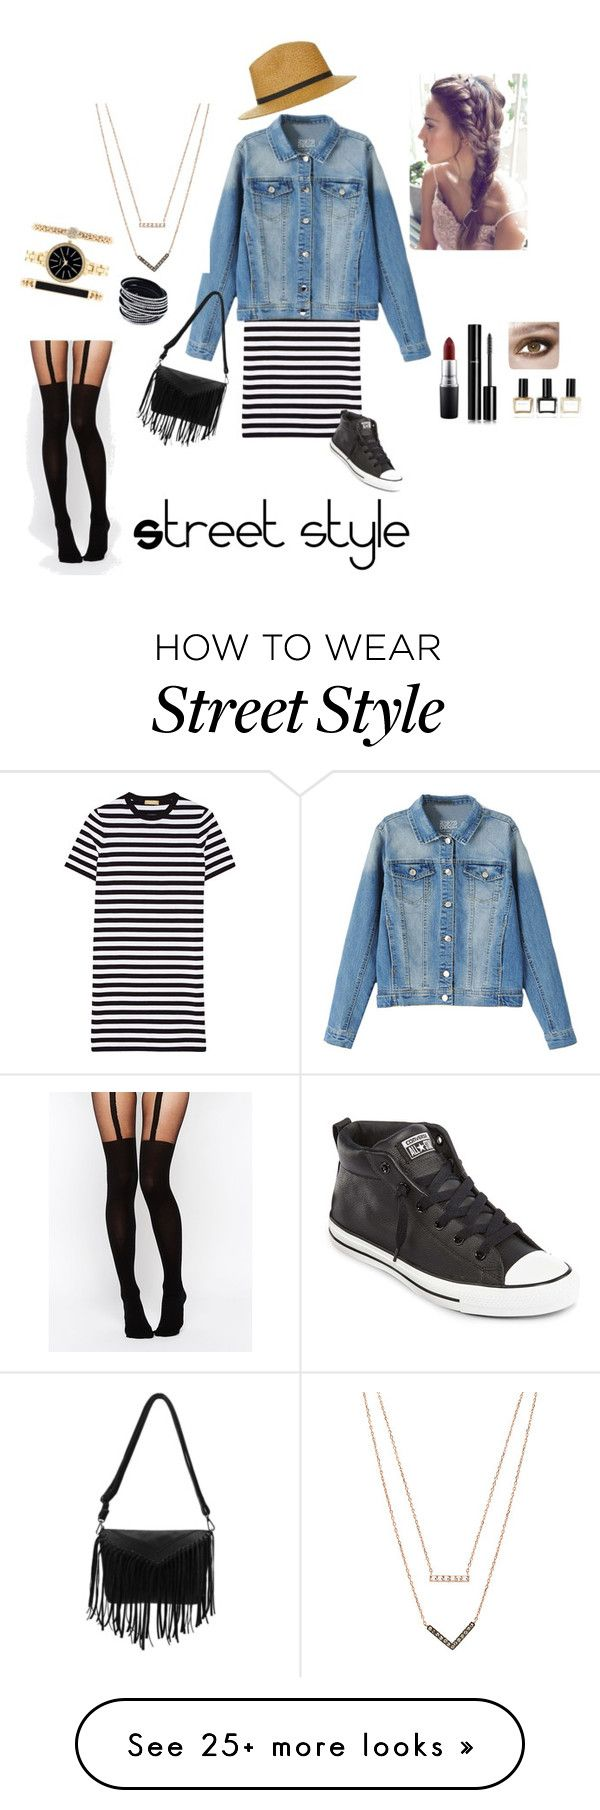 """""""Street Style"""" by kristenlba on Polyvore featuring Topshop, Michael Kors, Converse, MAC Cosmetics, Chanel, Balmain, Style & Co. and ASOS"""